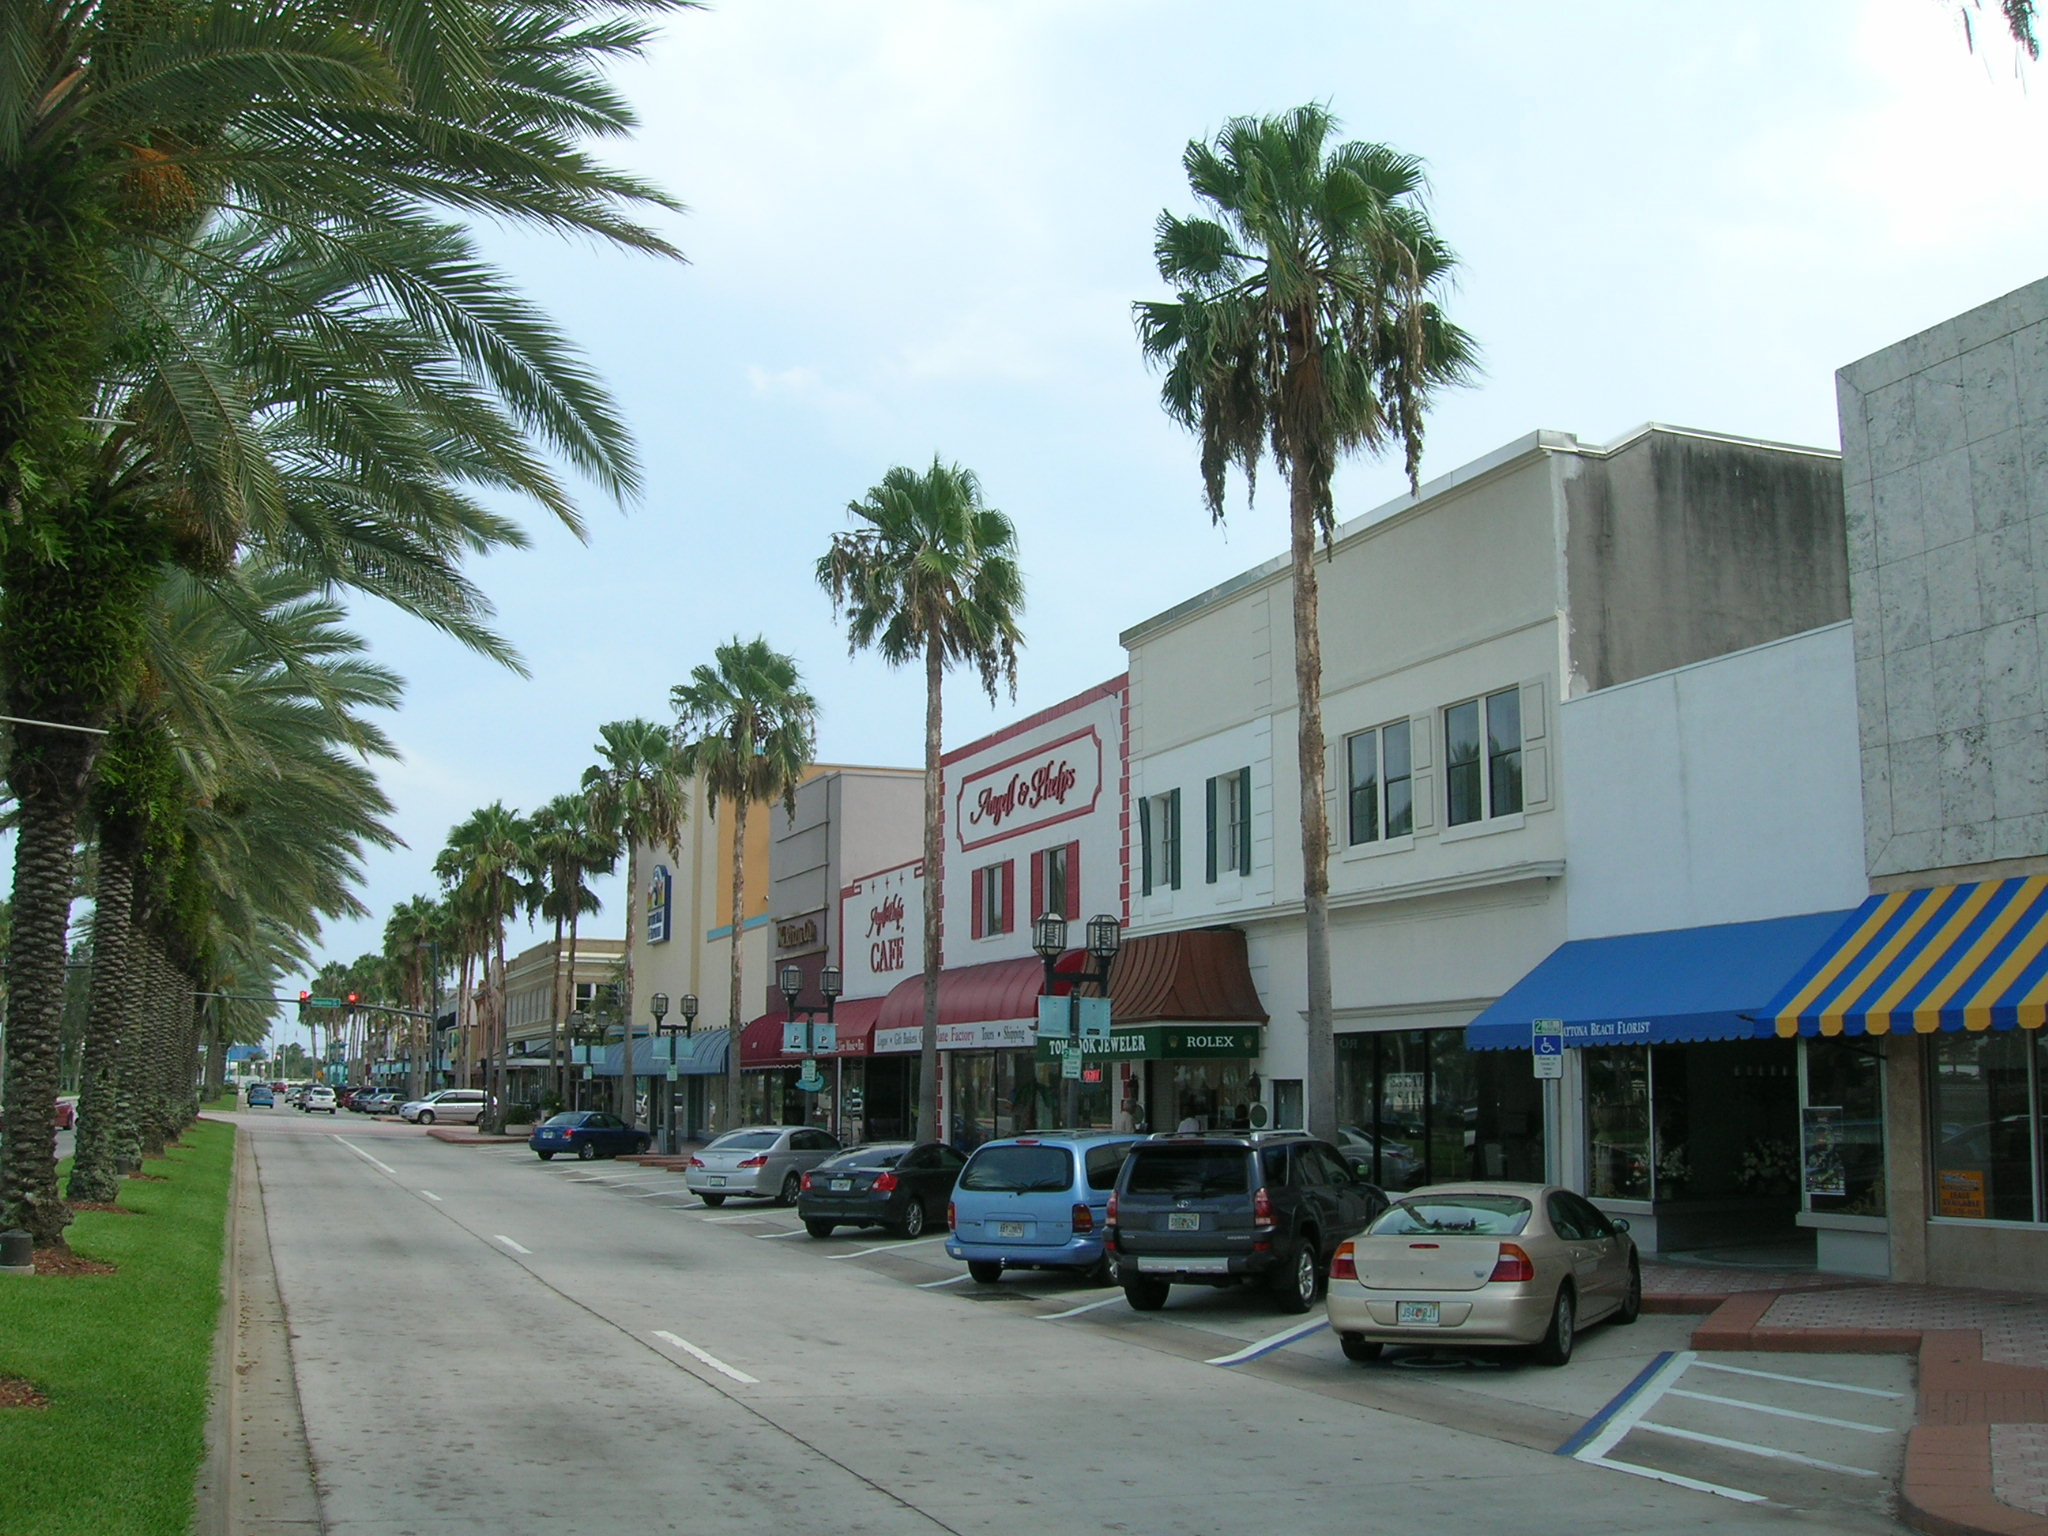 realty daytona beach riverfront watch luxury cottage sale fl oceans condo for cottages rent